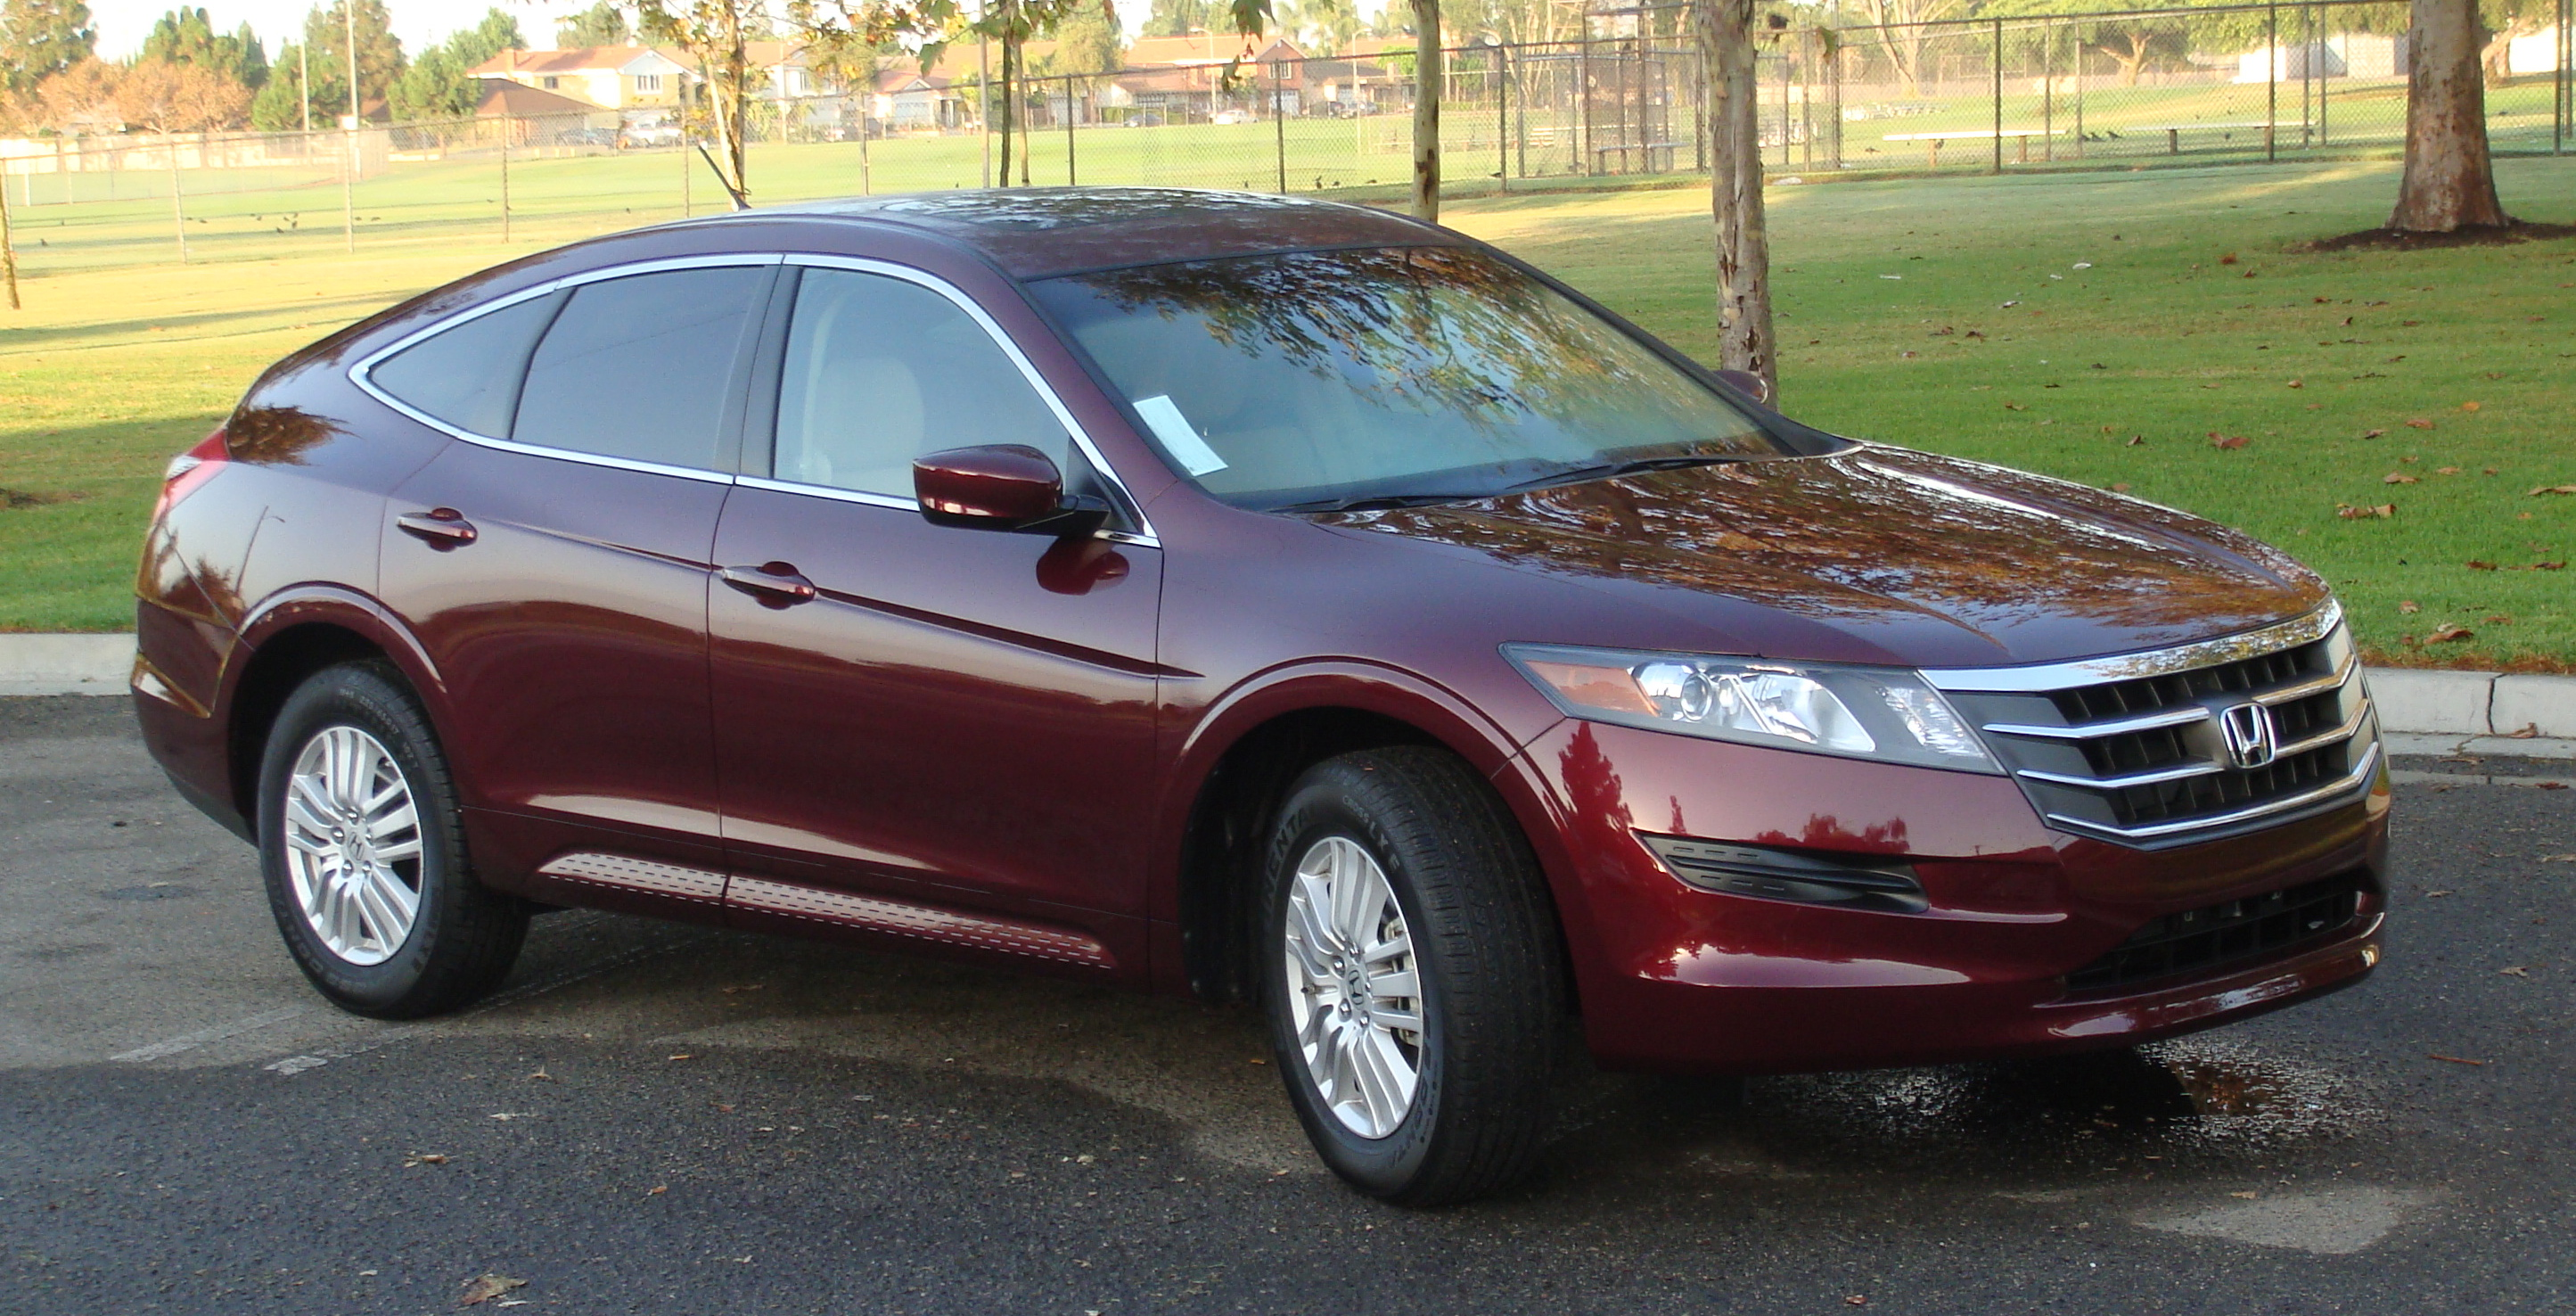 inside suvs image auto update honda updates pics price of family crosstour best car